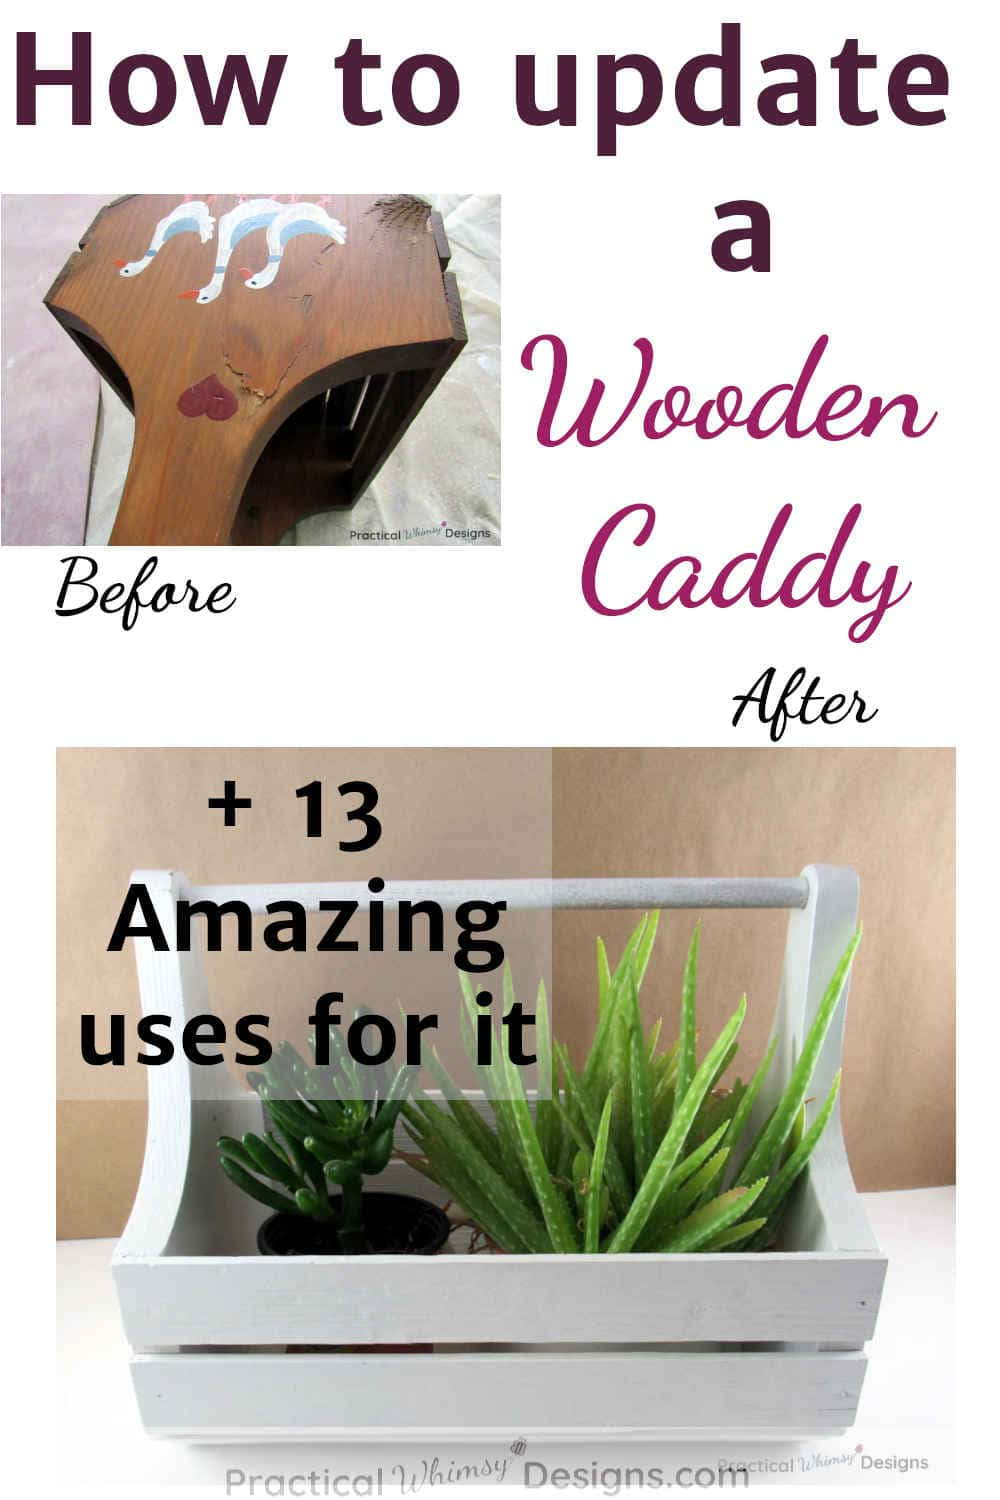 Before and after pictures of an upcycled wooden caddy